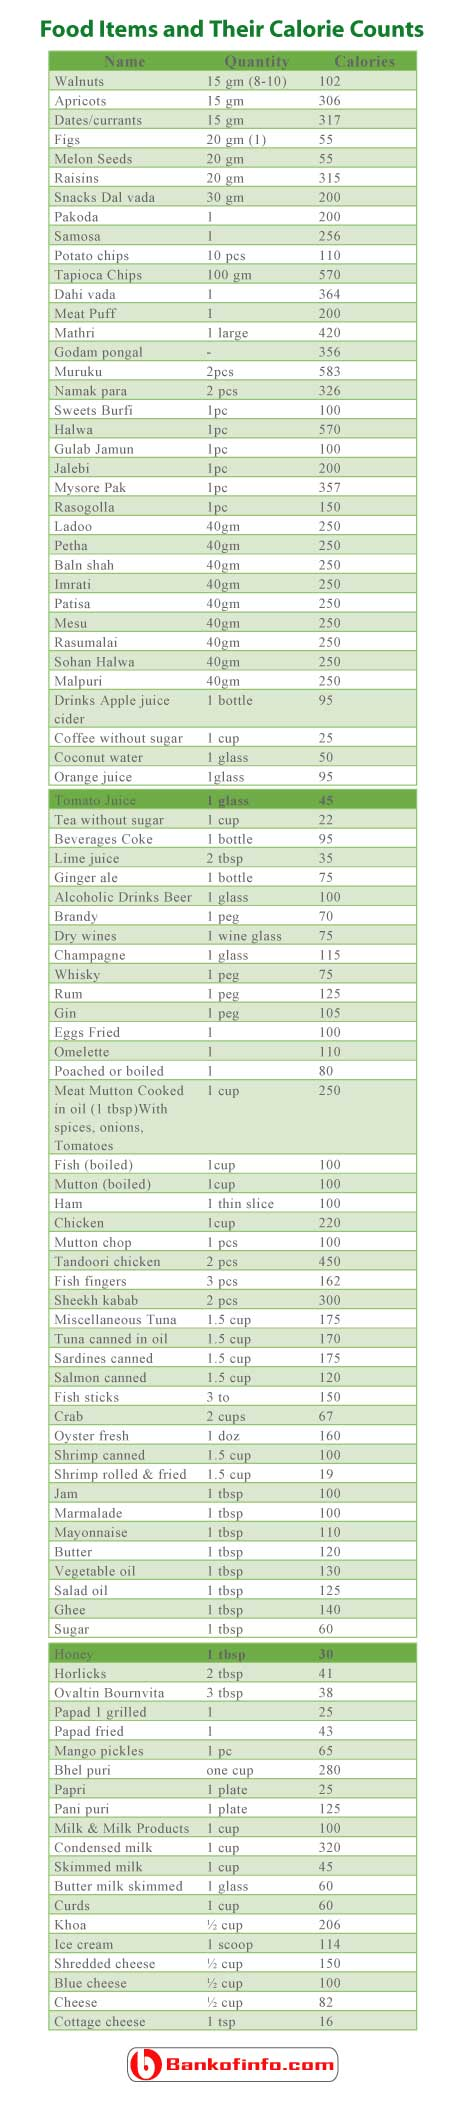 food_items_and_their_calorie_counts